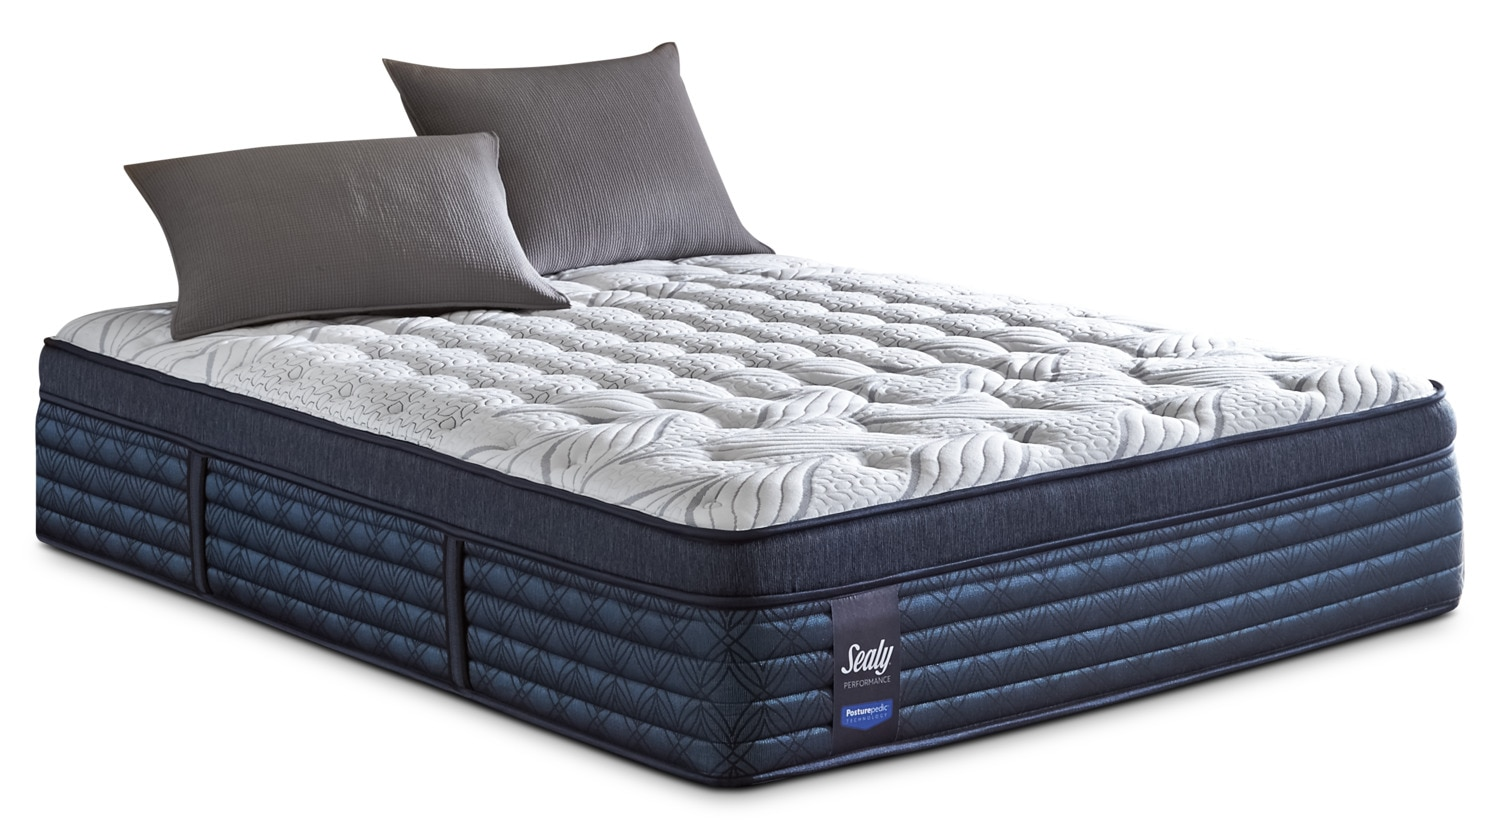 Sealy Posturepedic ProBack Hockenheim Euro-Top Firm Queen Mattress